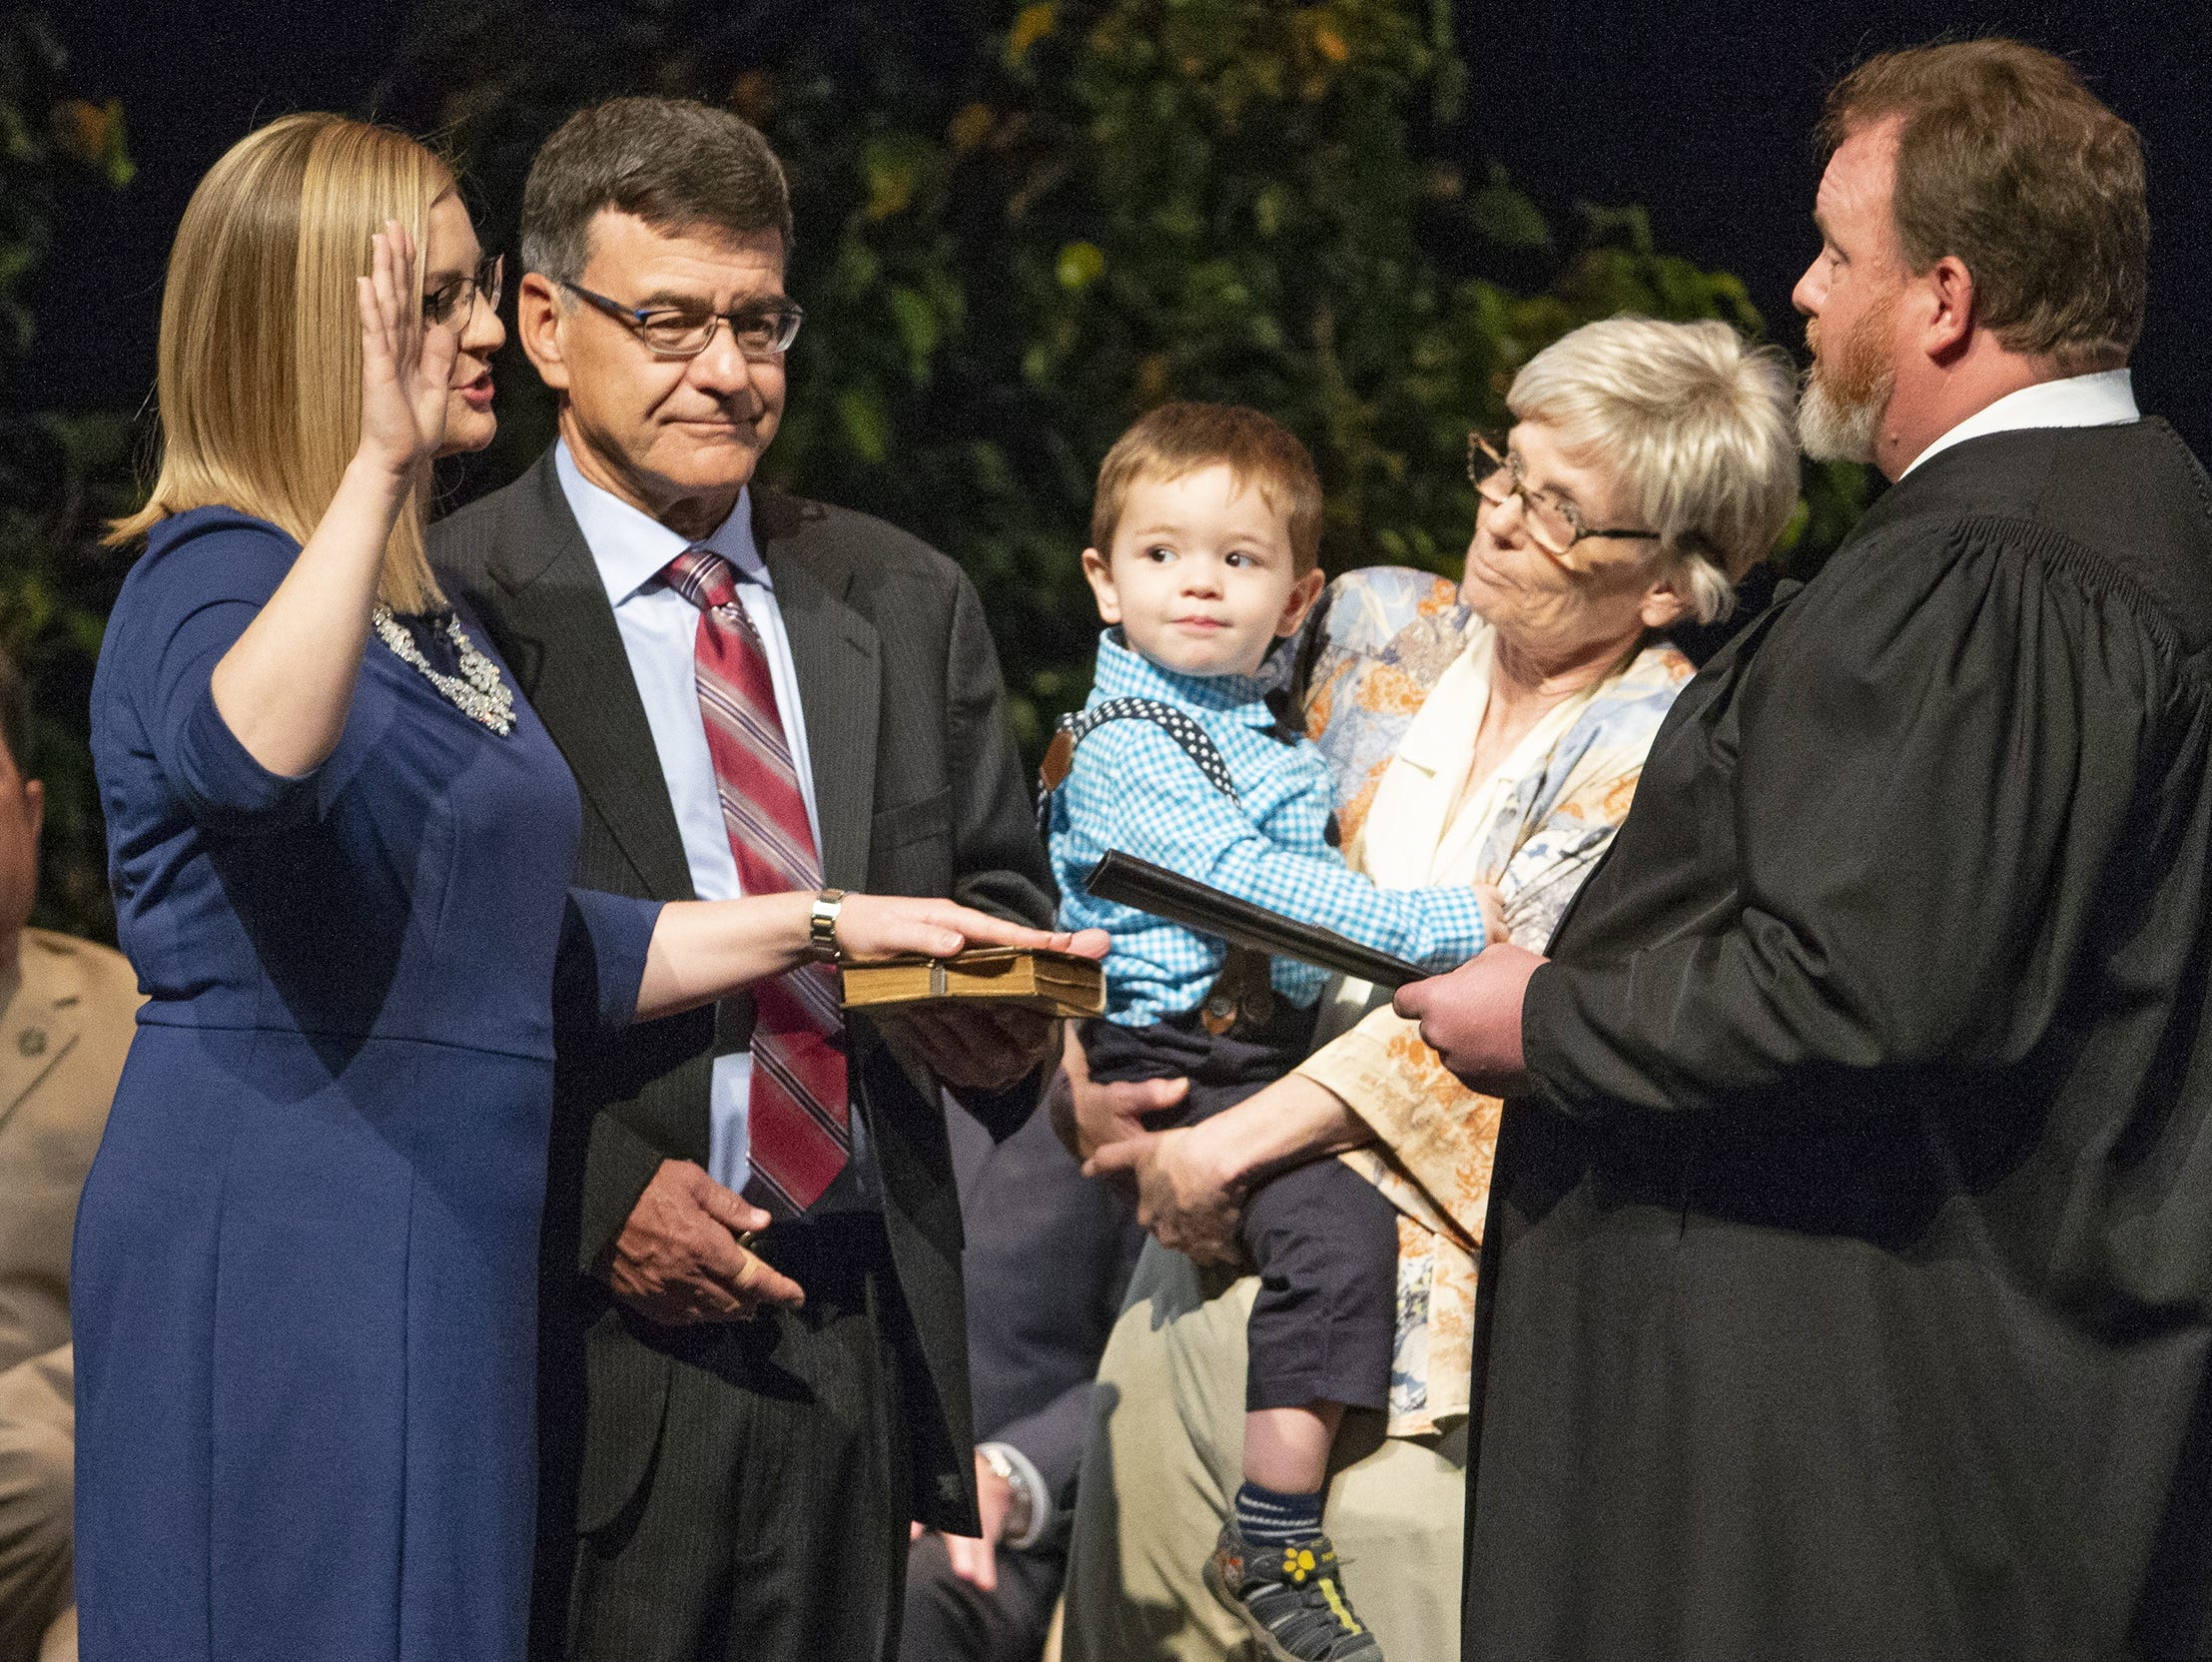 Kate Gallego stands next to her parents and her son, Michael, as she is sworn in as the new mayor of Phoenix by Chief Presiding Judge B. Don Taylor III on March 21 at the Orpheum Theatre in Phoenix, Ariz.